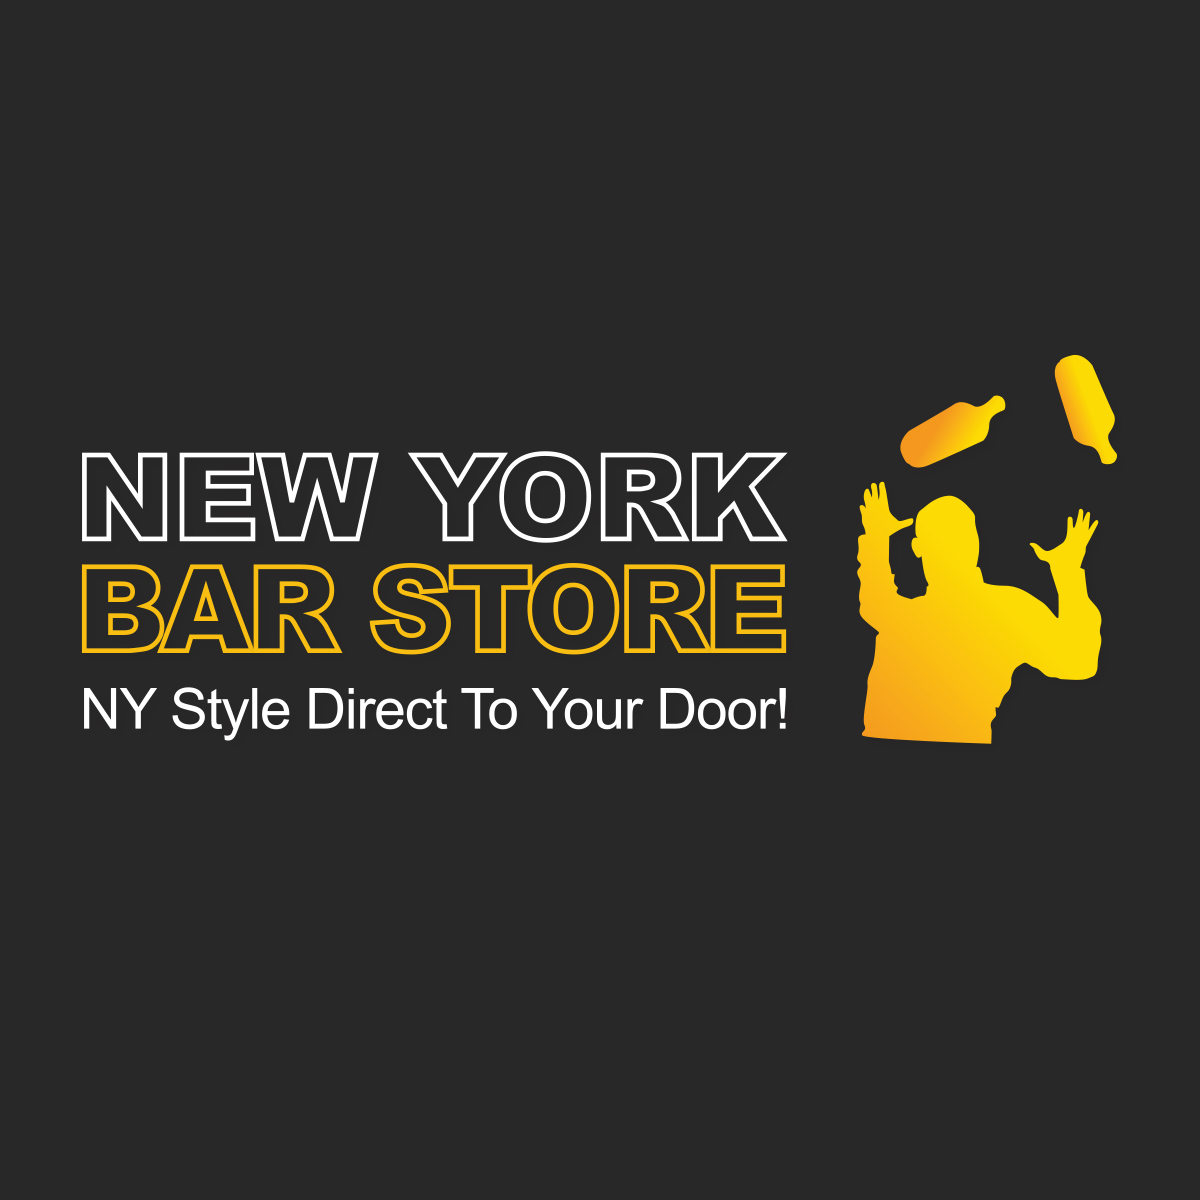 New York Bar Store - Bartending Affiliate Programs